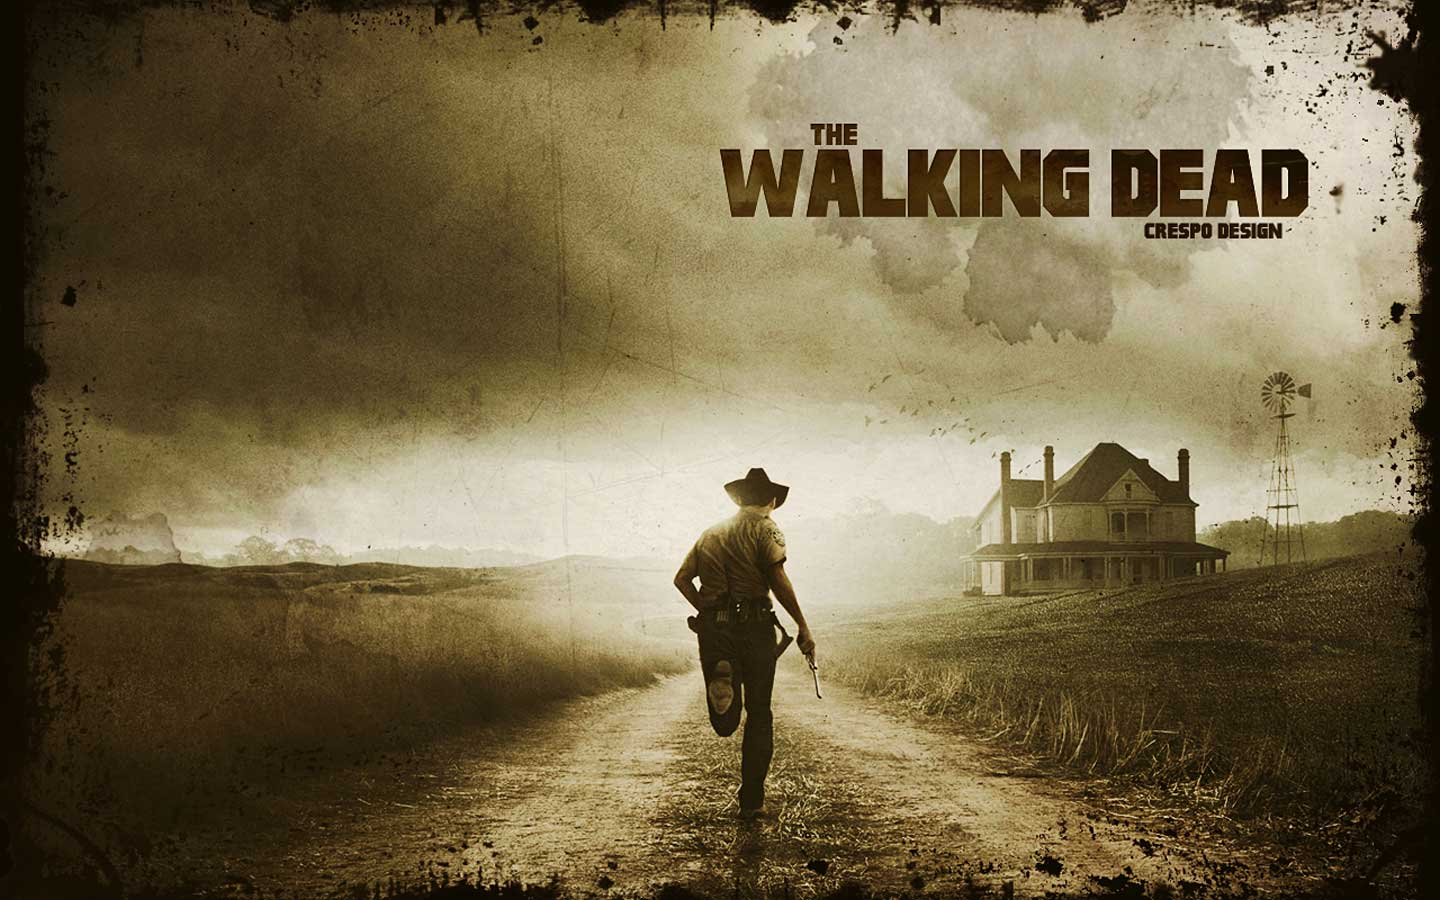 The Walking Dead Free Wallpapers - Wallpaper Cave